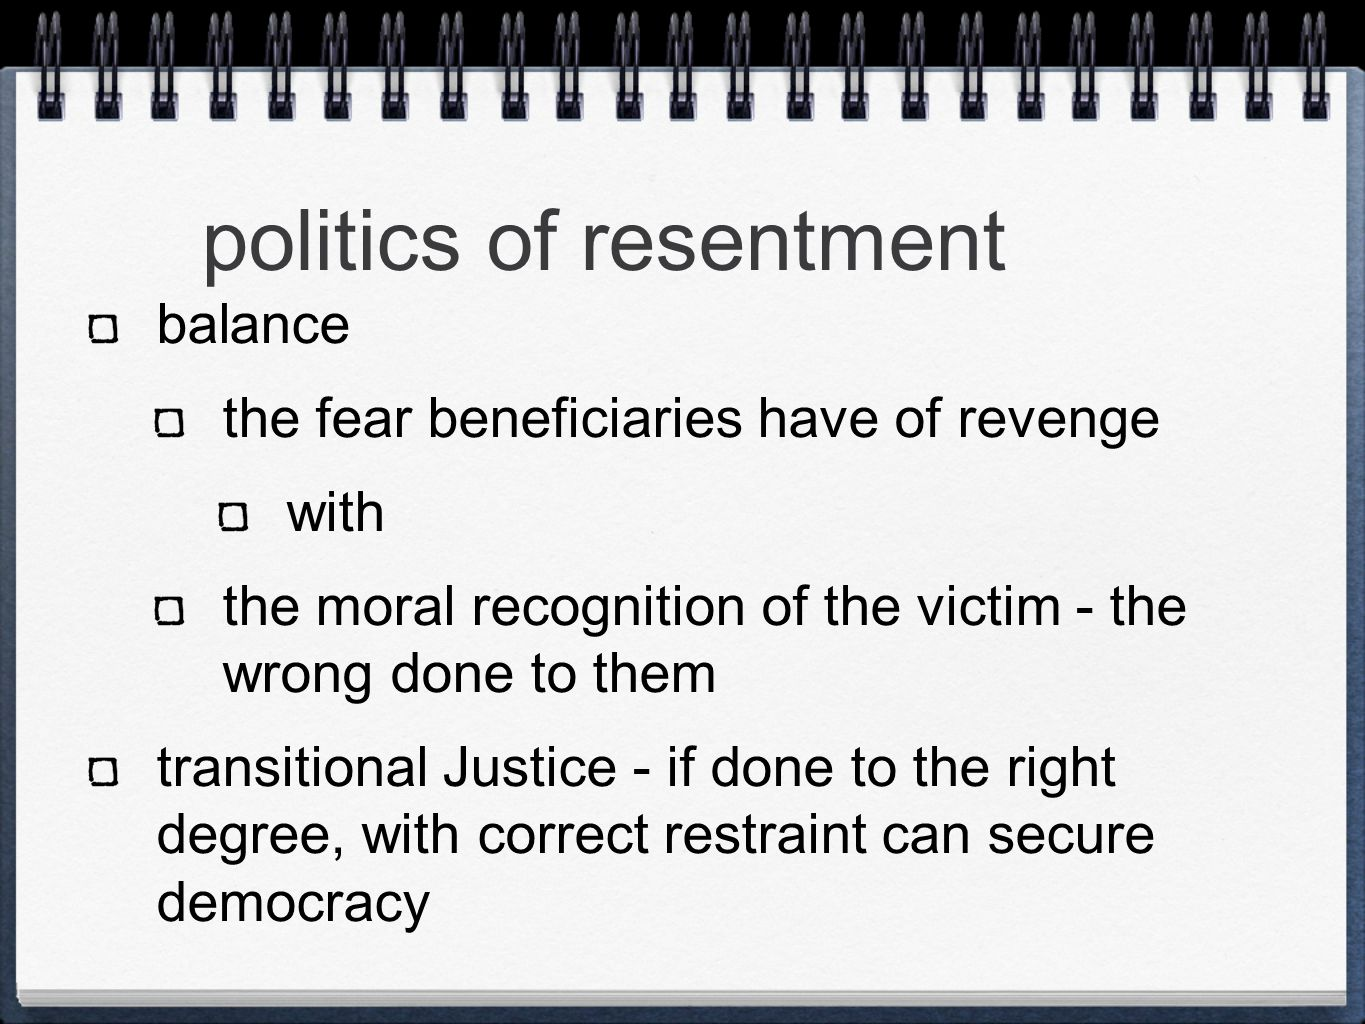 politics of resentment balance the fear beneficiaries have of revenge with the moral recognition of the victim - the wrong done to them transitional Justice - if done to the right degree, with correct restraint can secure democracy